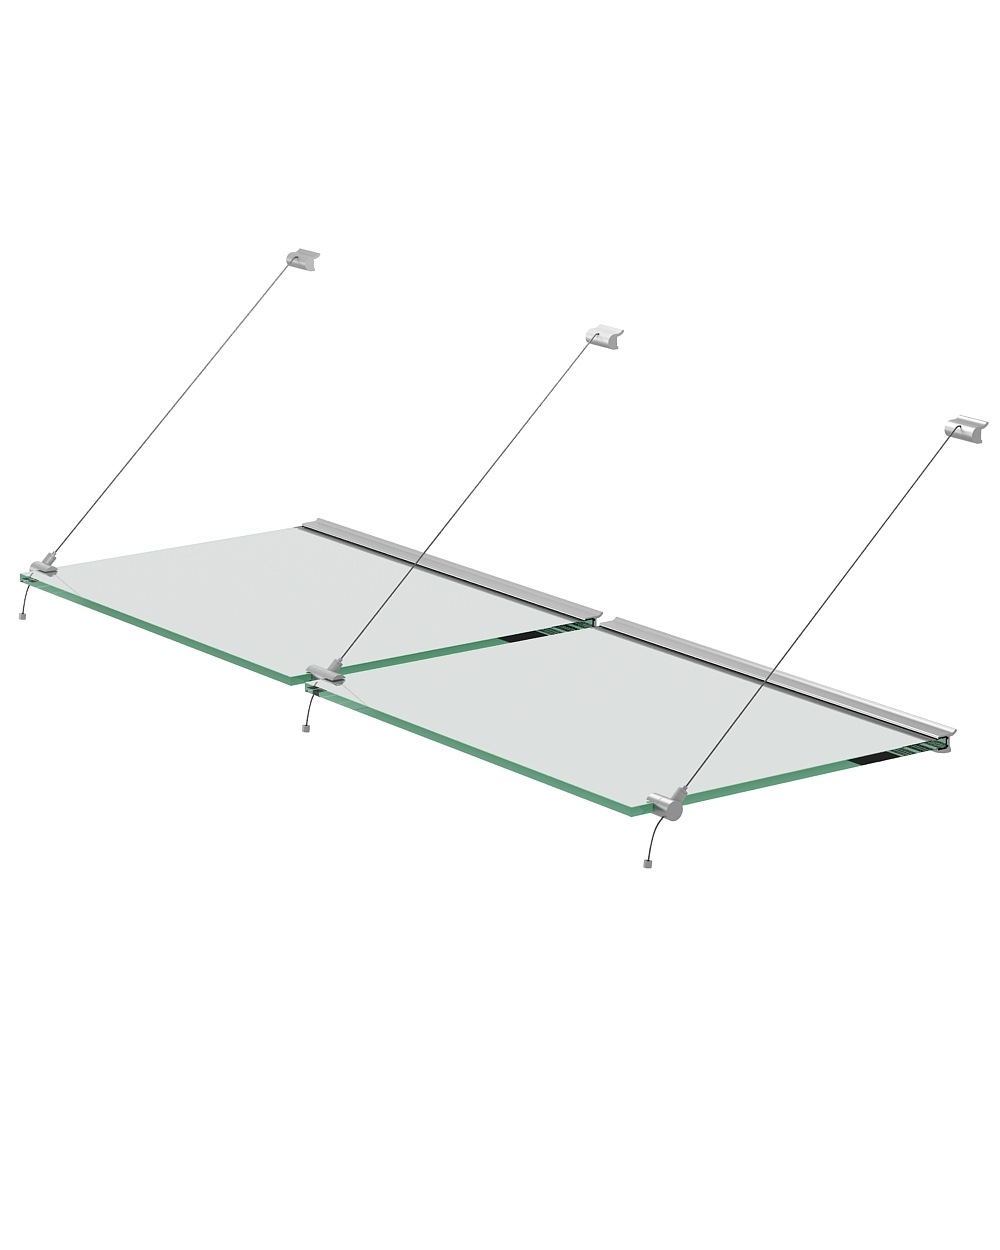 Steel Wire System Set For Glass Shelves Of 10mm Thickness With Pertaining To Glass Suspension Shelves (#13 of 15)